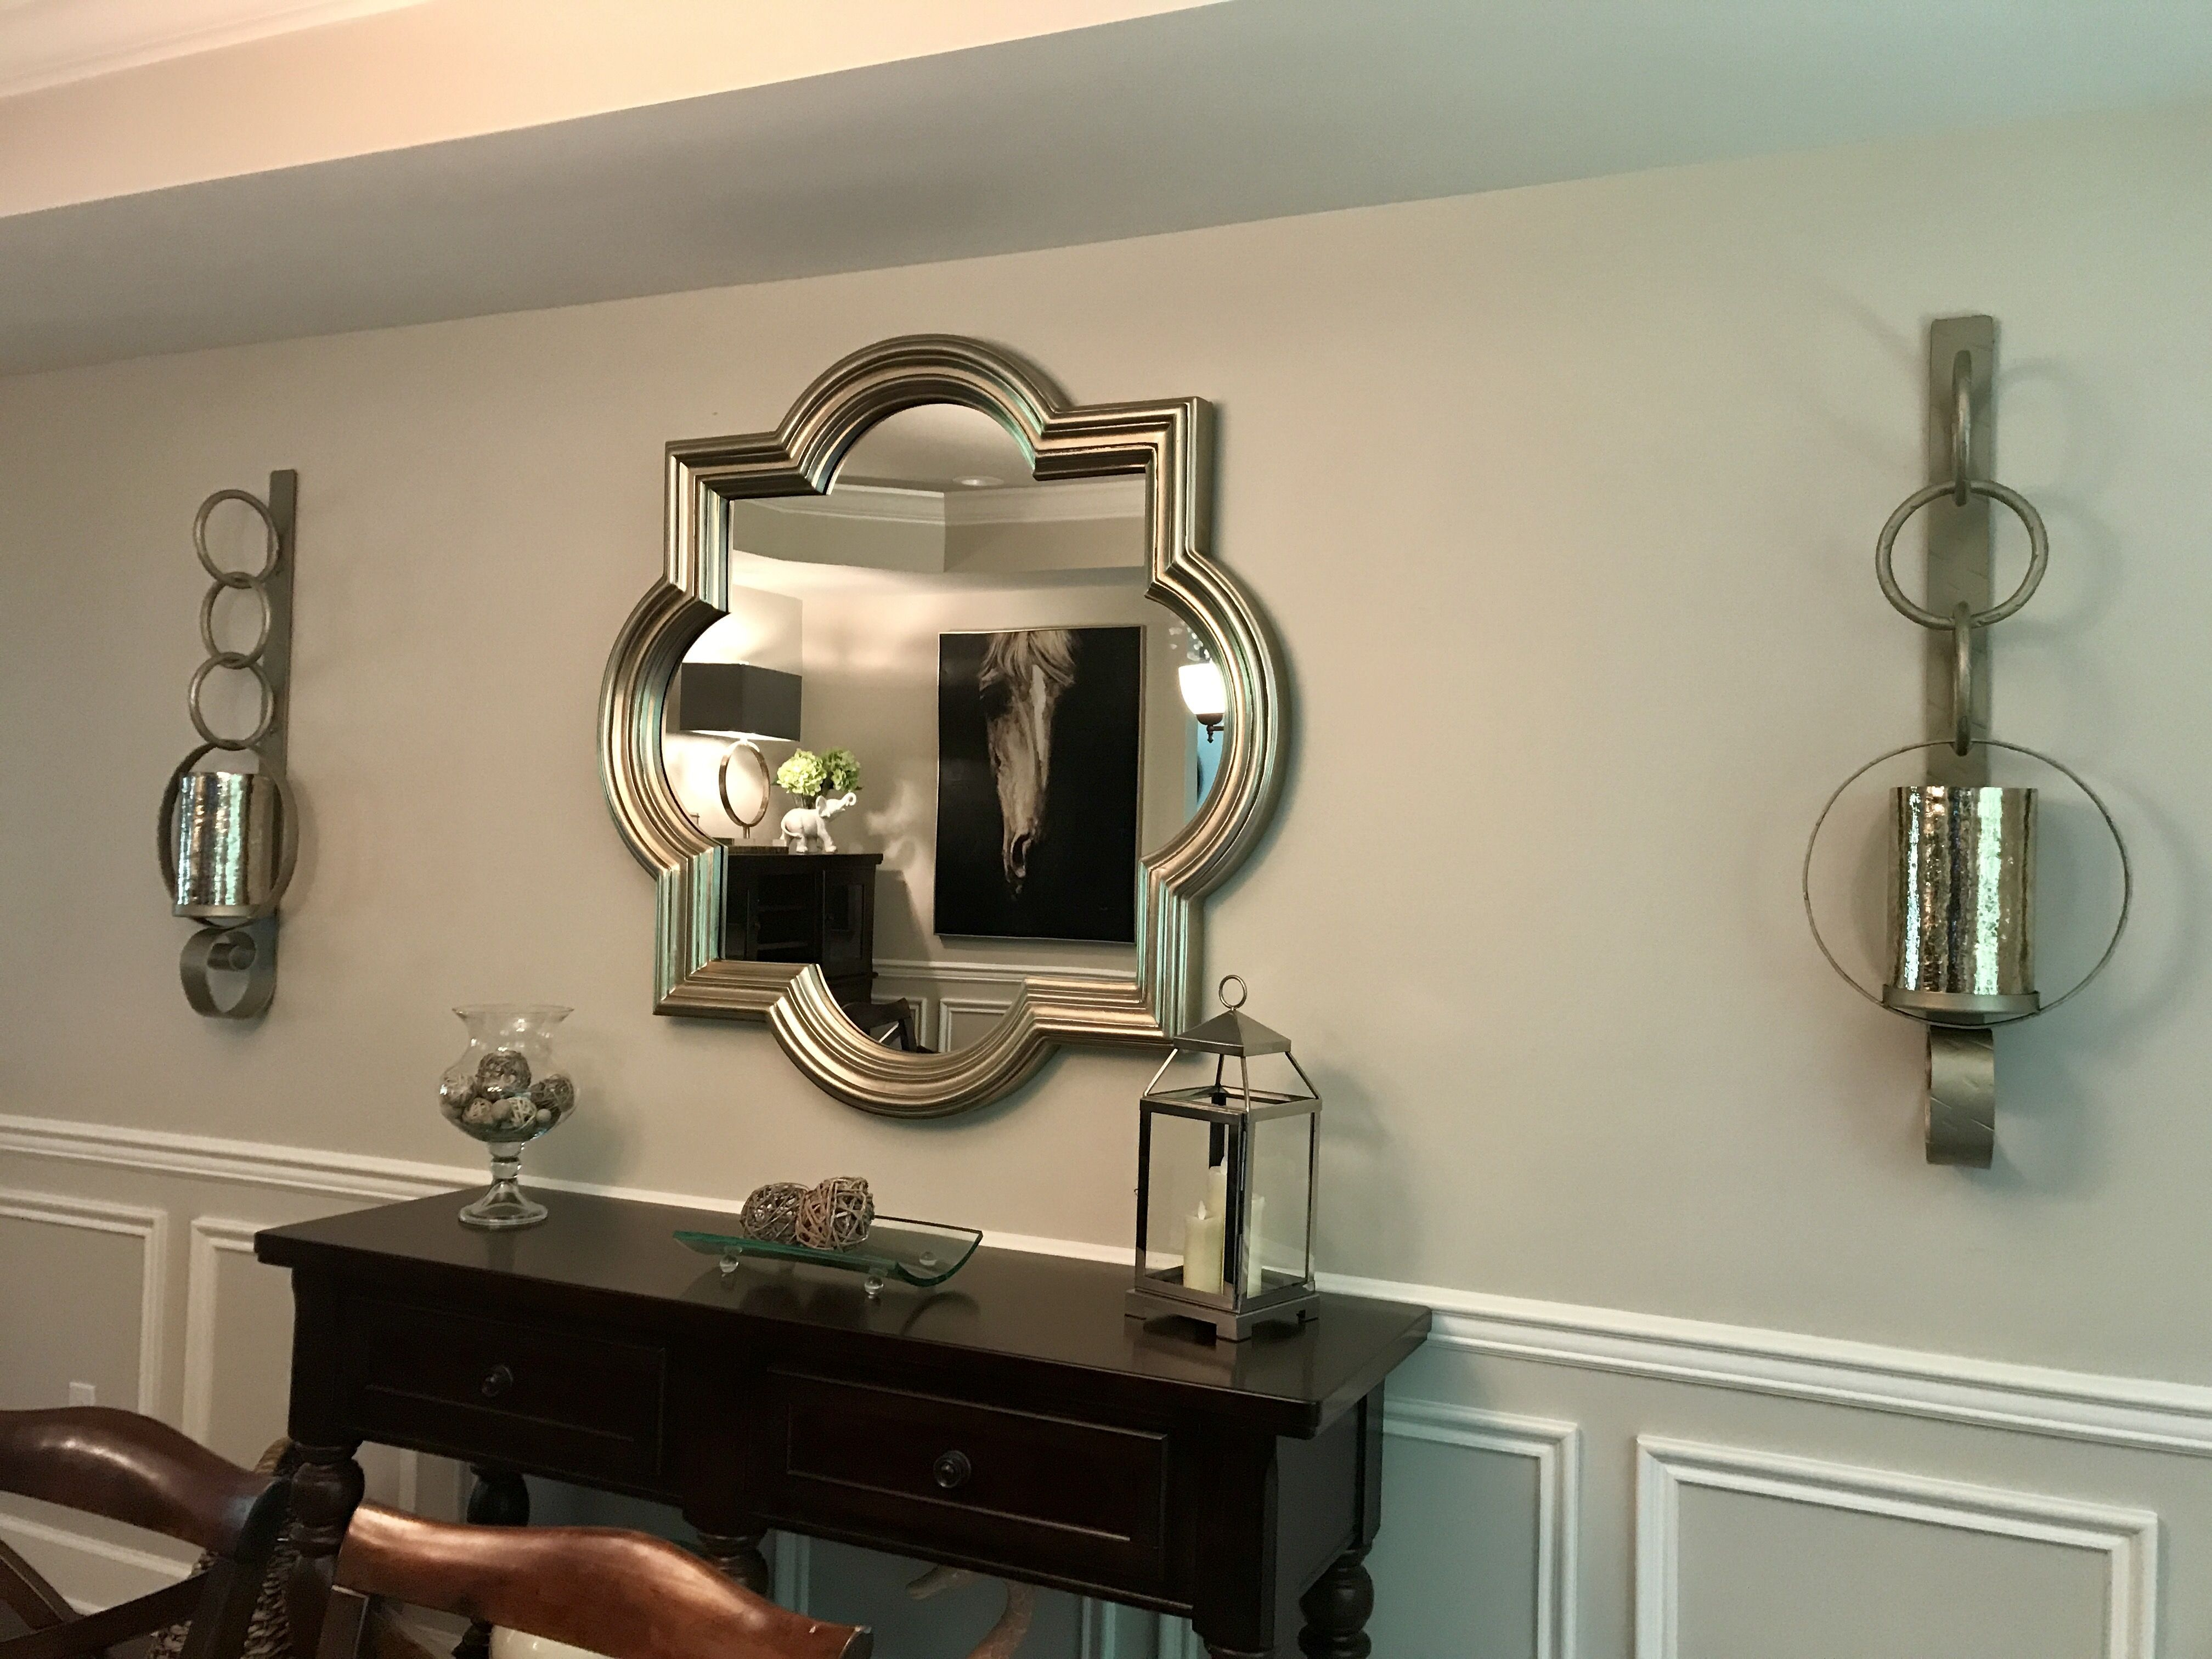 My Awesome Quatrefoil Mirror From At Home With My Fabulous Iron